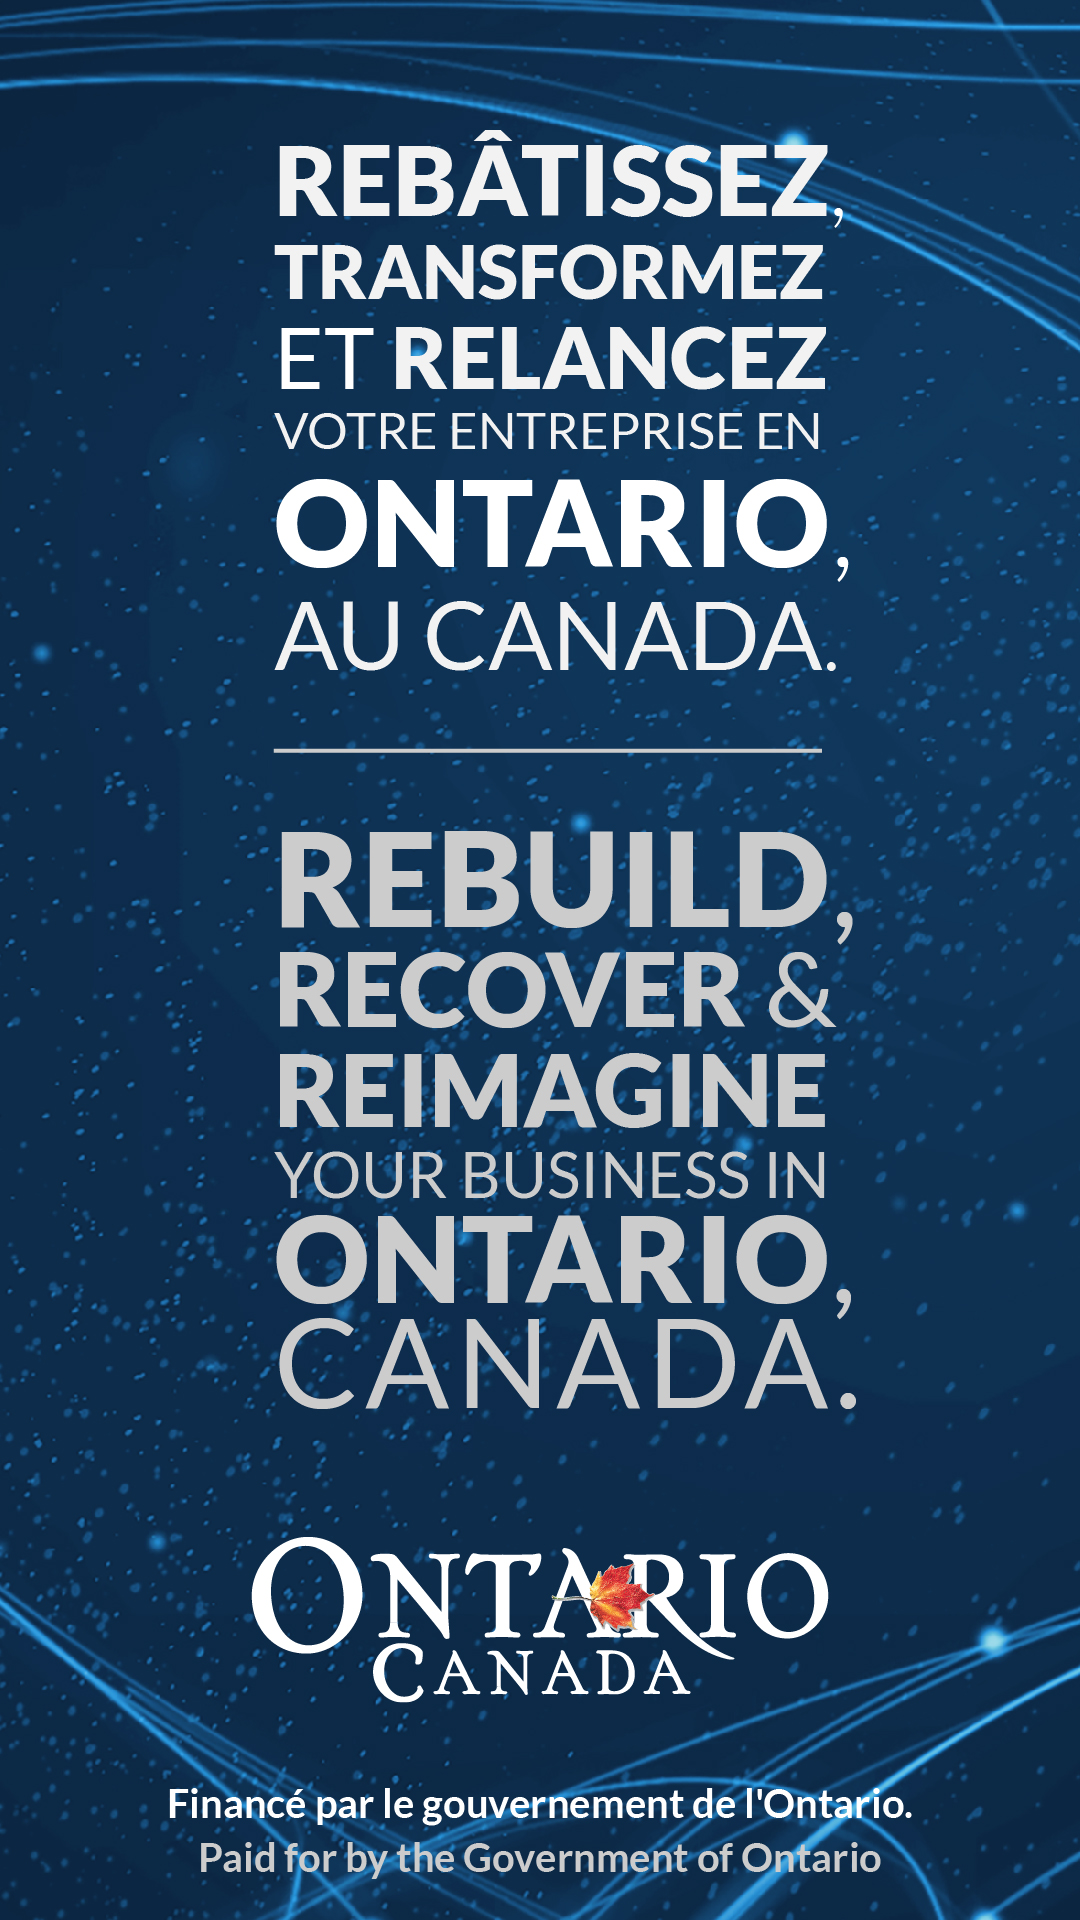 Rebuild, recover and reimagine your business in Ontario, Canada.